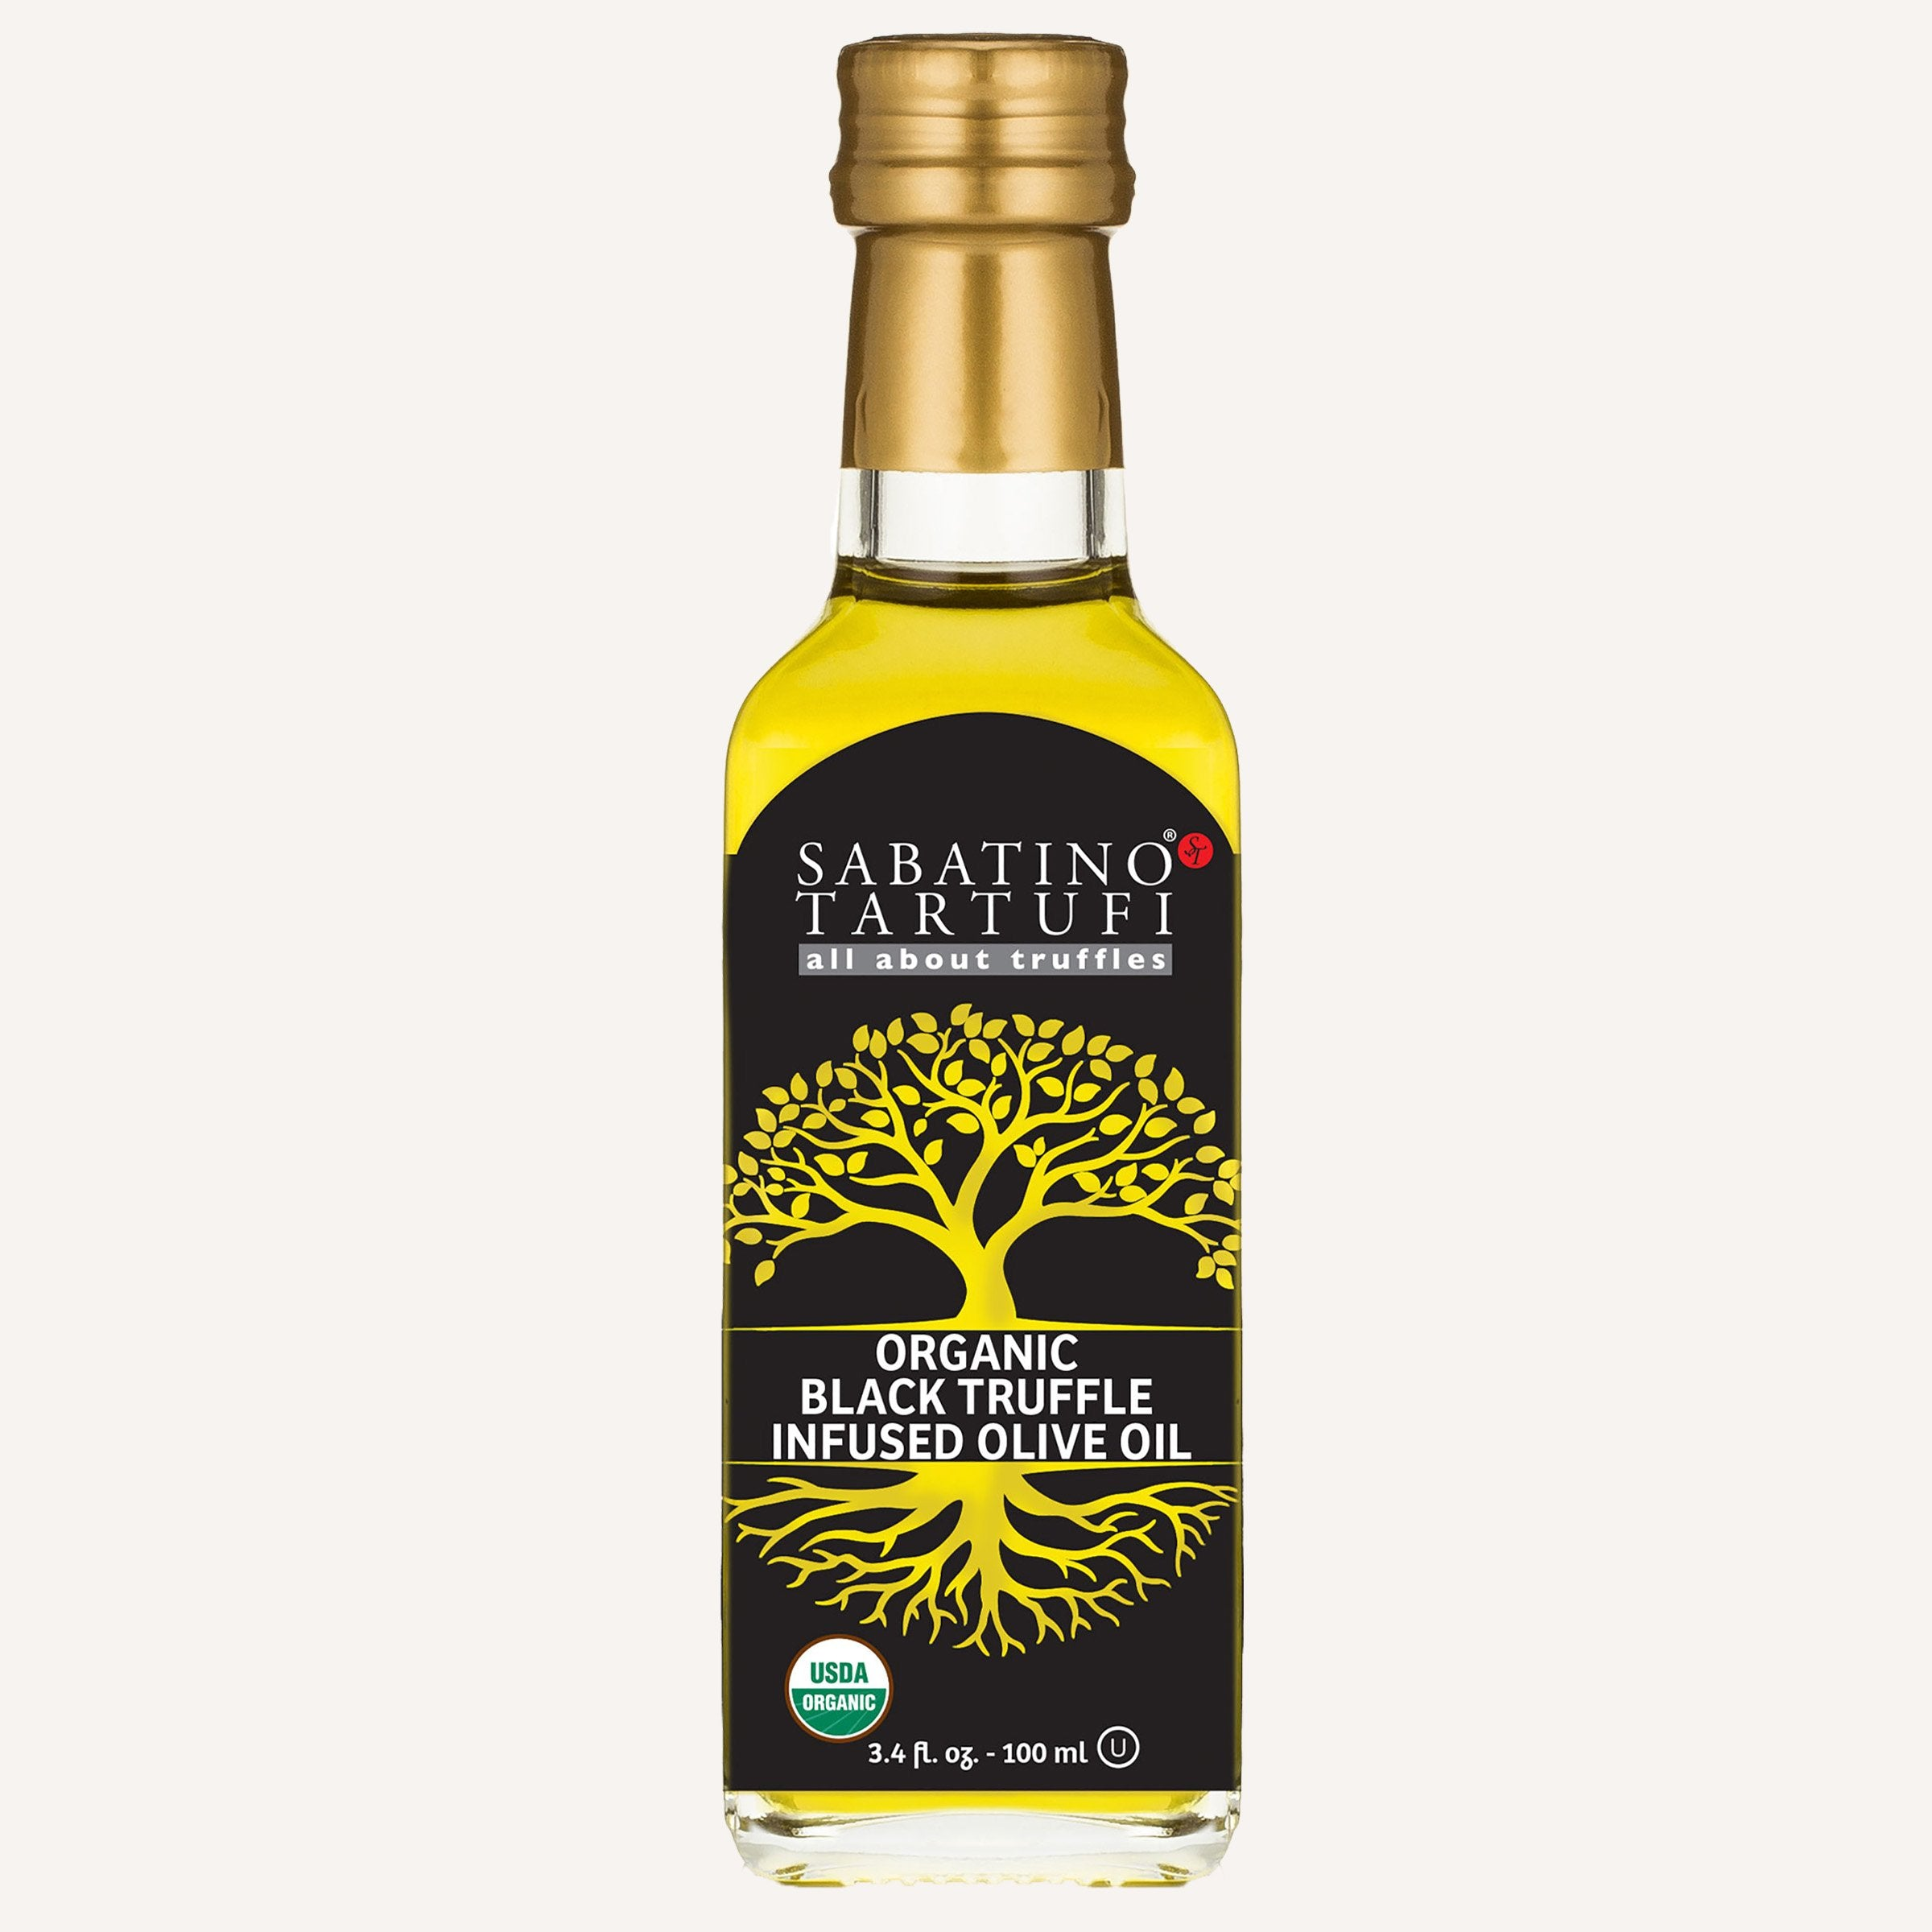 USDA Organic Black Truffle Oil - 3.4 fl oz <br>Case Pack 6 Units